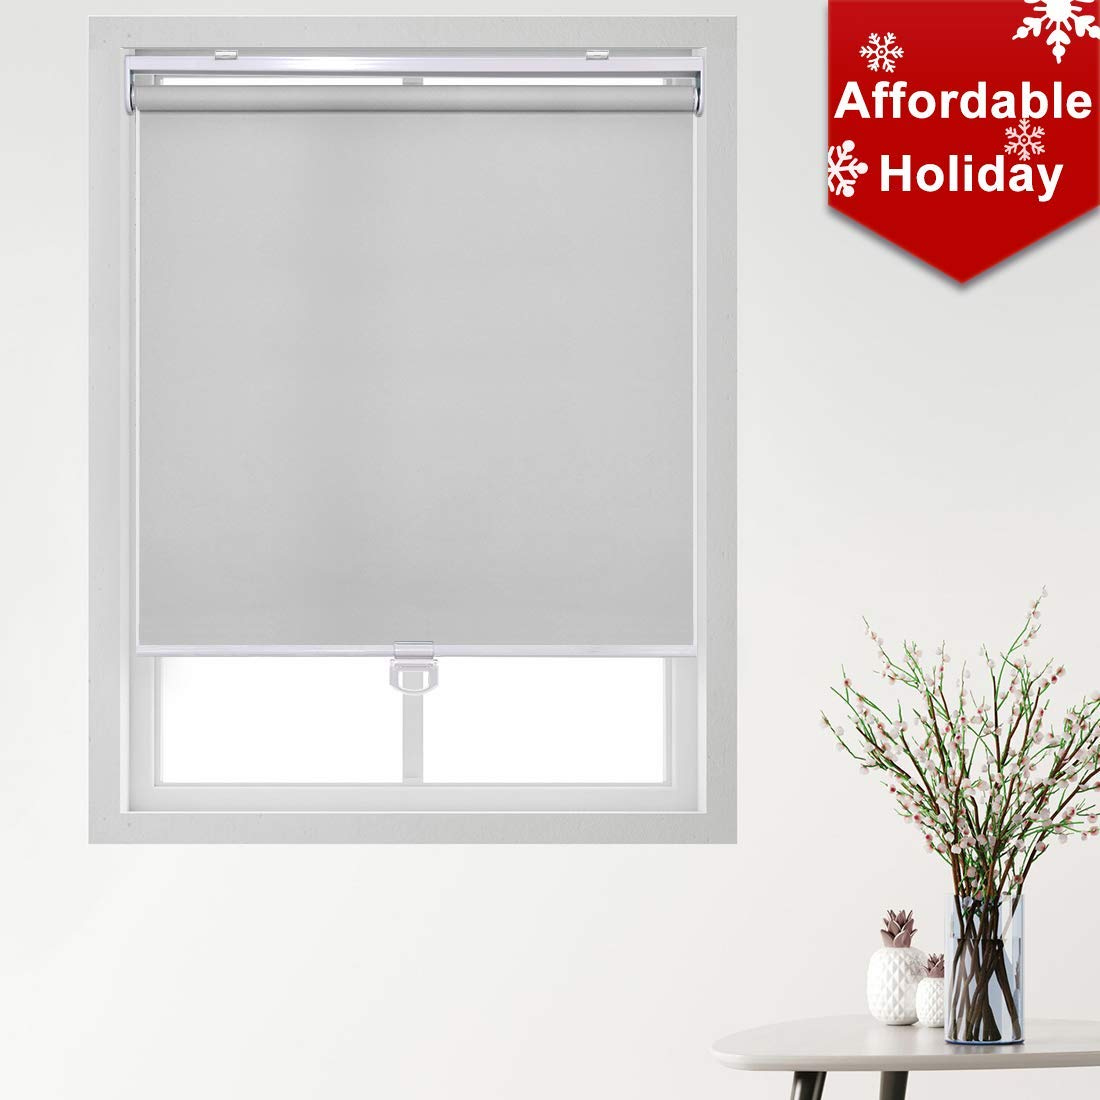 """Keego Cordless Roller Blinds and Shades for Windows - Blackout Spring Roller Shades - Cordless Privacy Room Darkening Window Cover for Home & Office [Gray 100% Blackout,24.5"""" W x 70"""" H(Inch)]"""